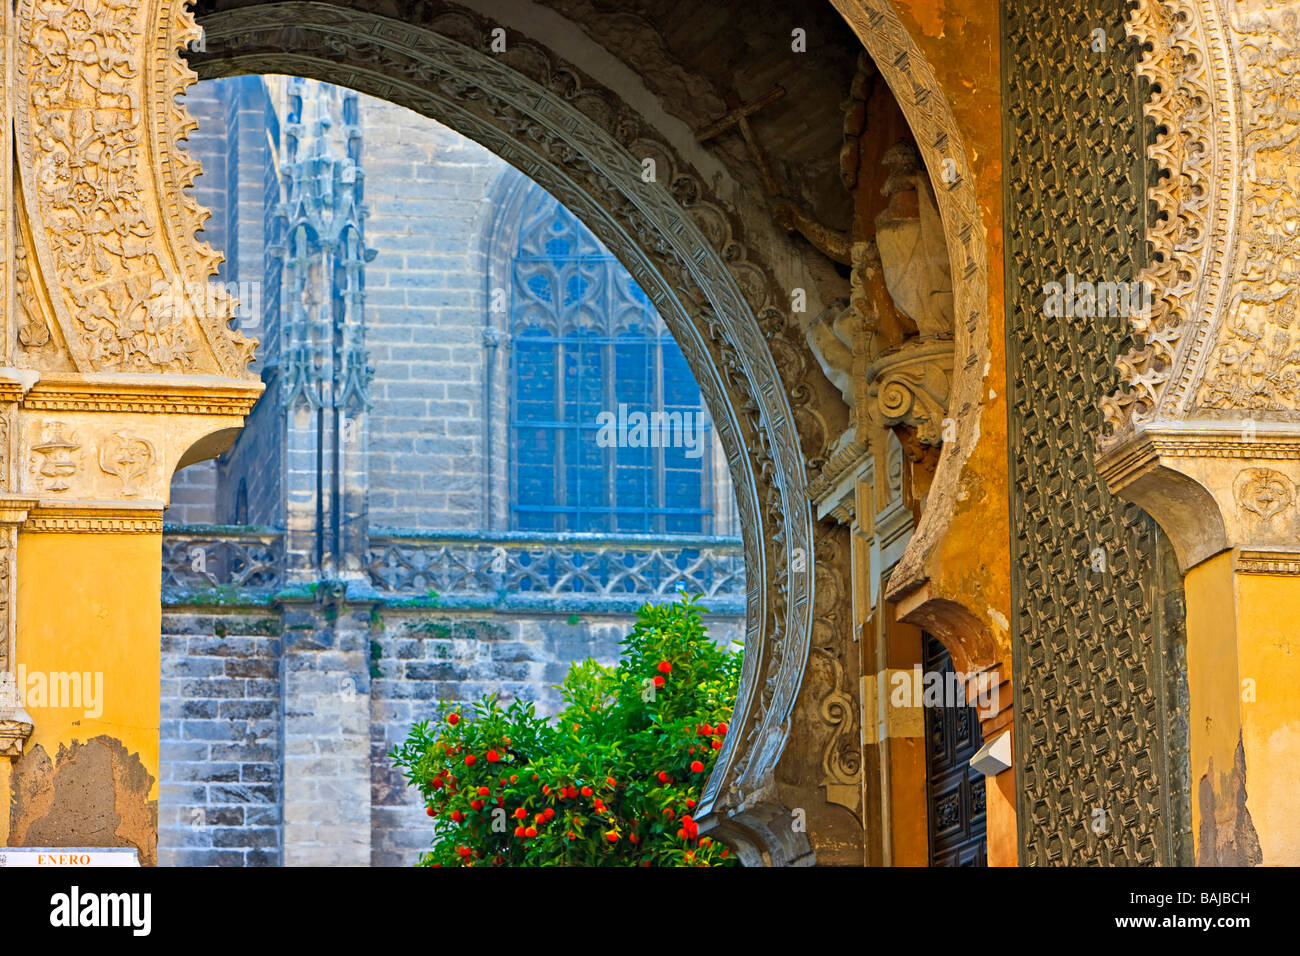 Looking through Puerta del Perdon (Door of Forgiveness),Seville Cathedral and La Giralda (bell tower/minaret). - Stock Image